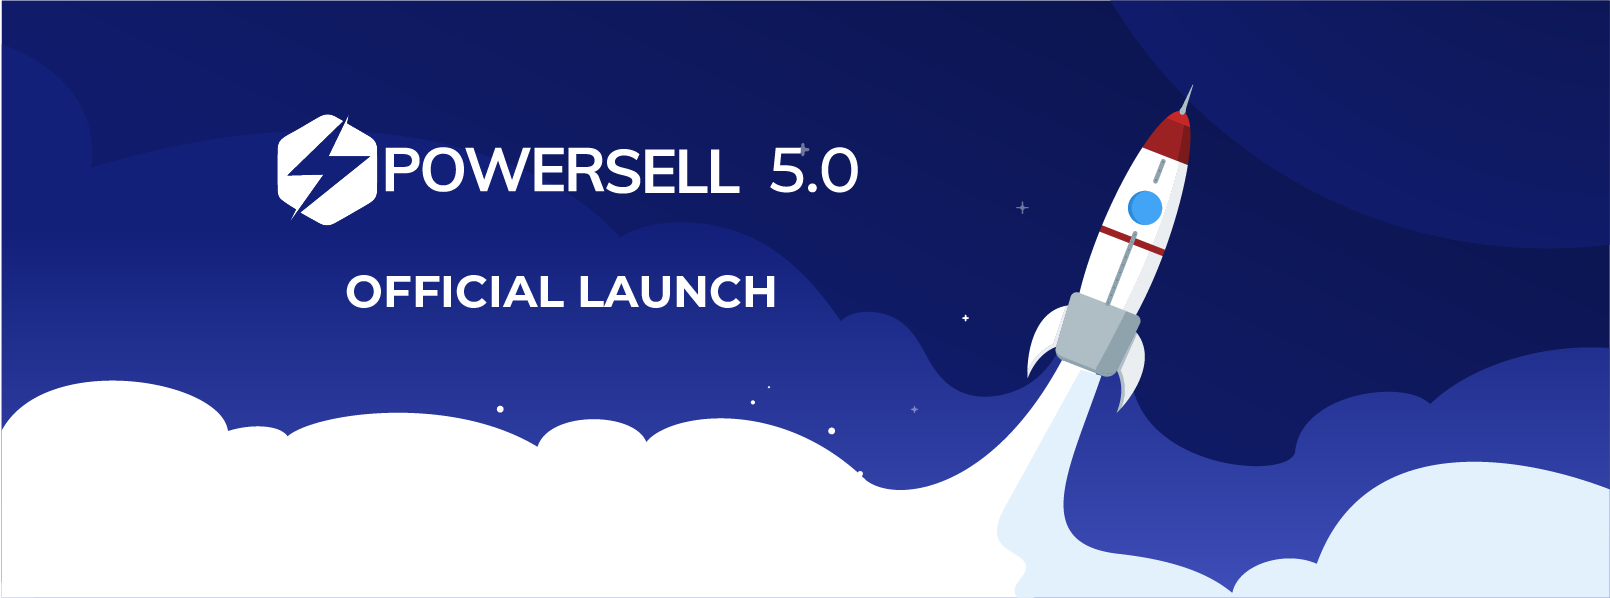 PowerSell-5.0-official-launch